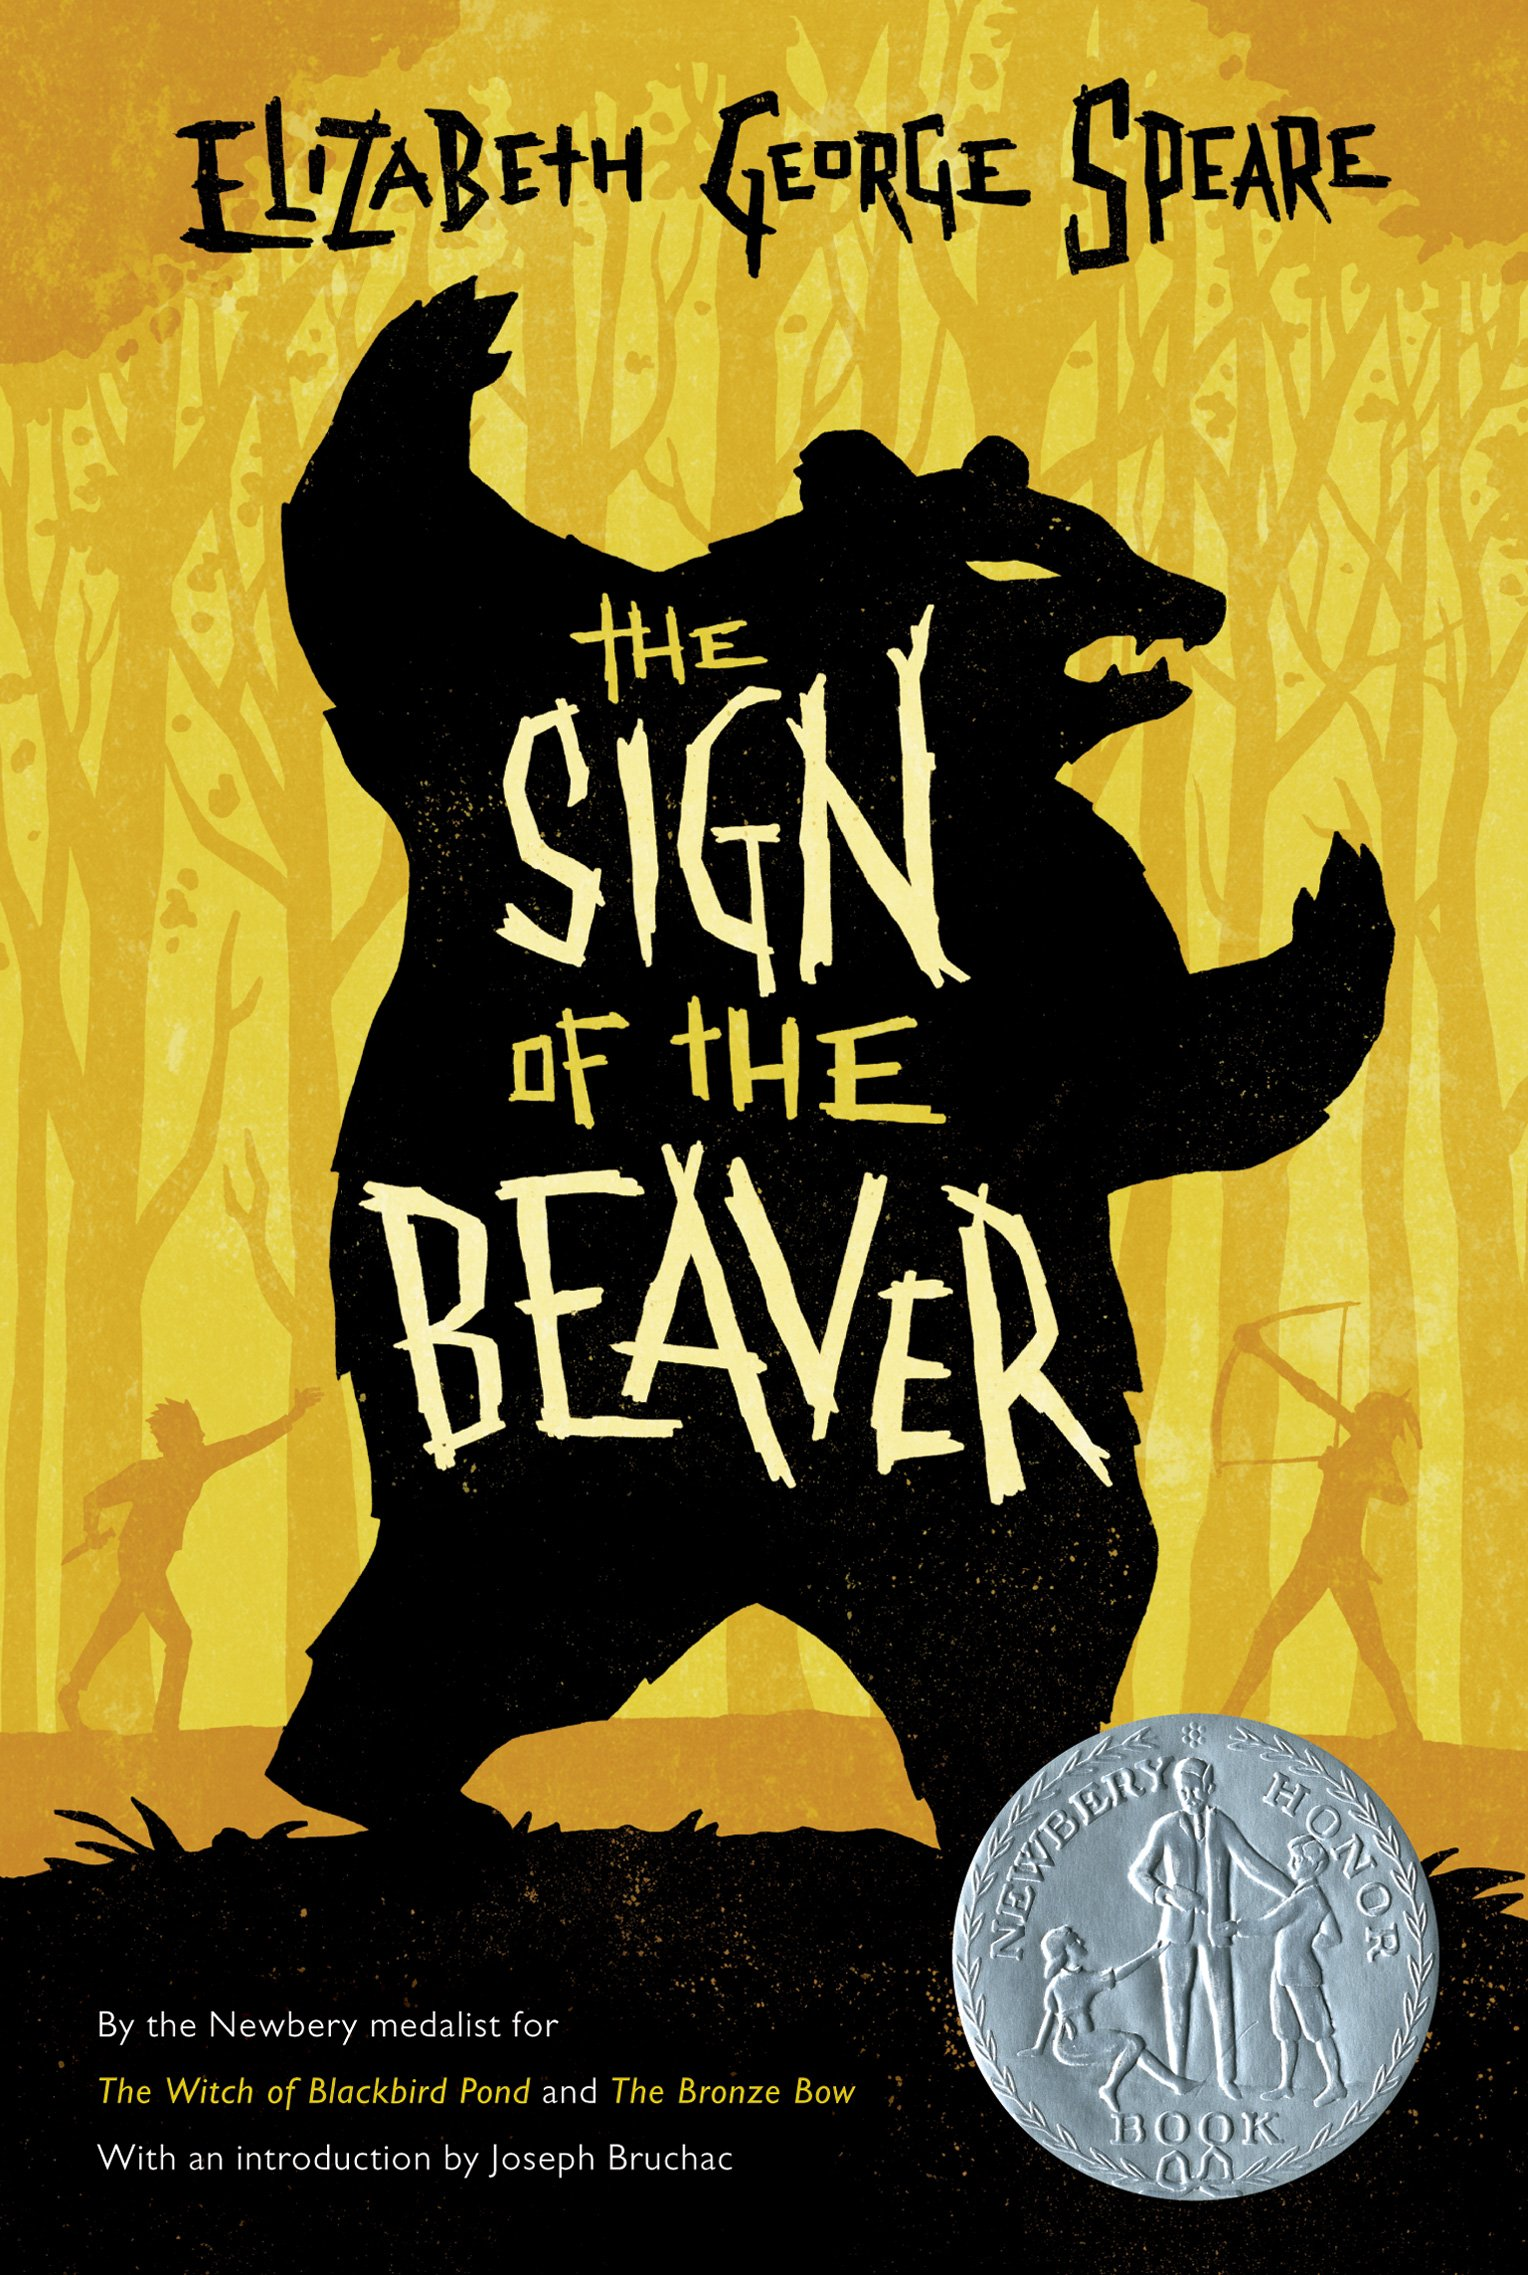 amazon the sign of the beaver elizabeth george speare